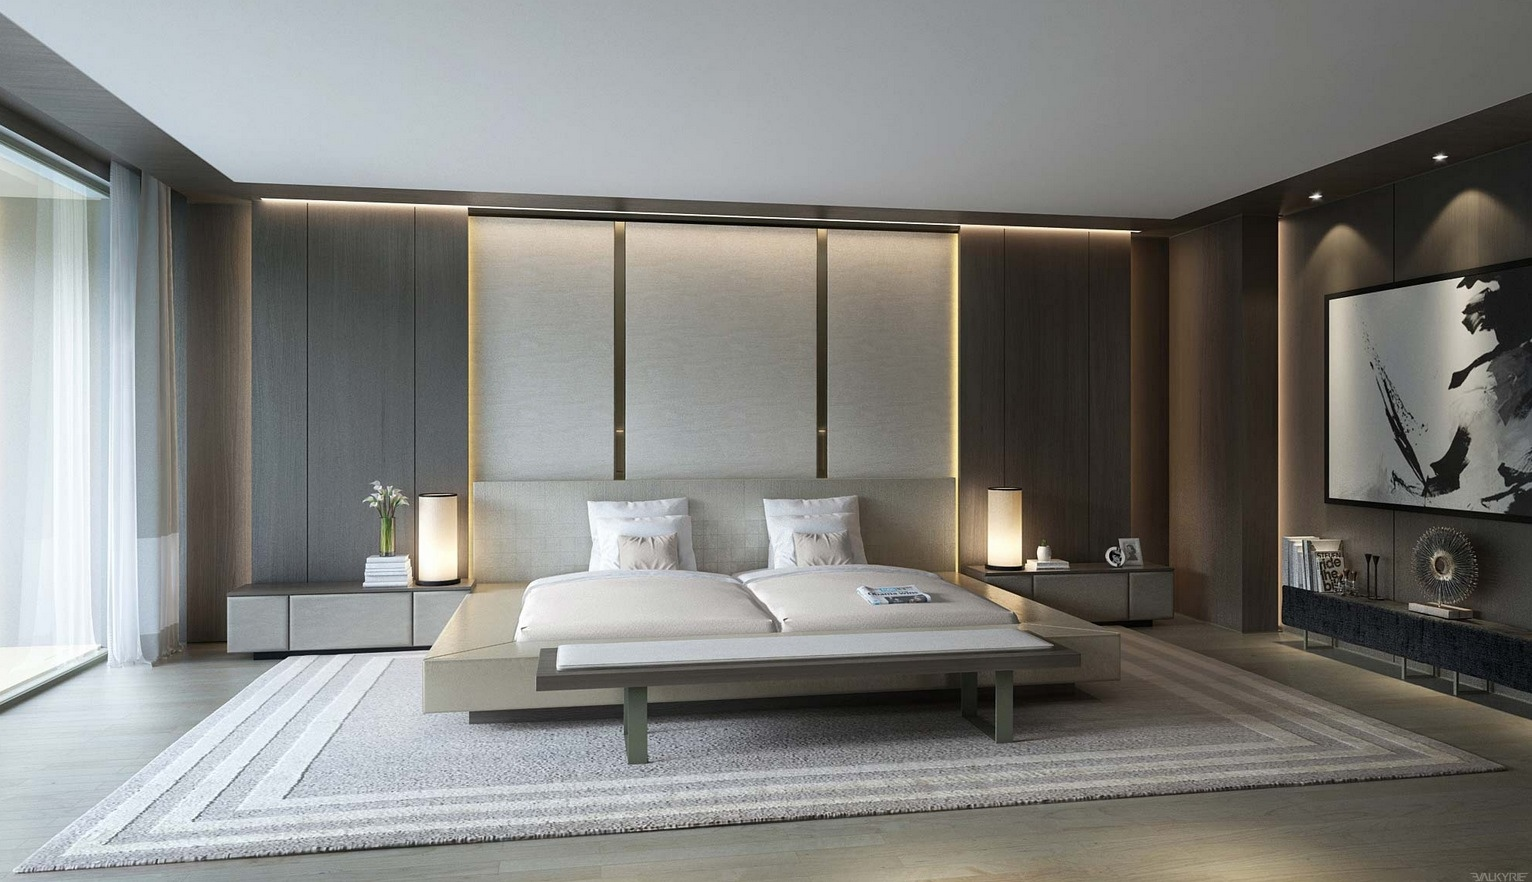 21 Cool Bedrooms for Clean and Simple Design Inspiration on Simple Best Bedroom Design  id=12542